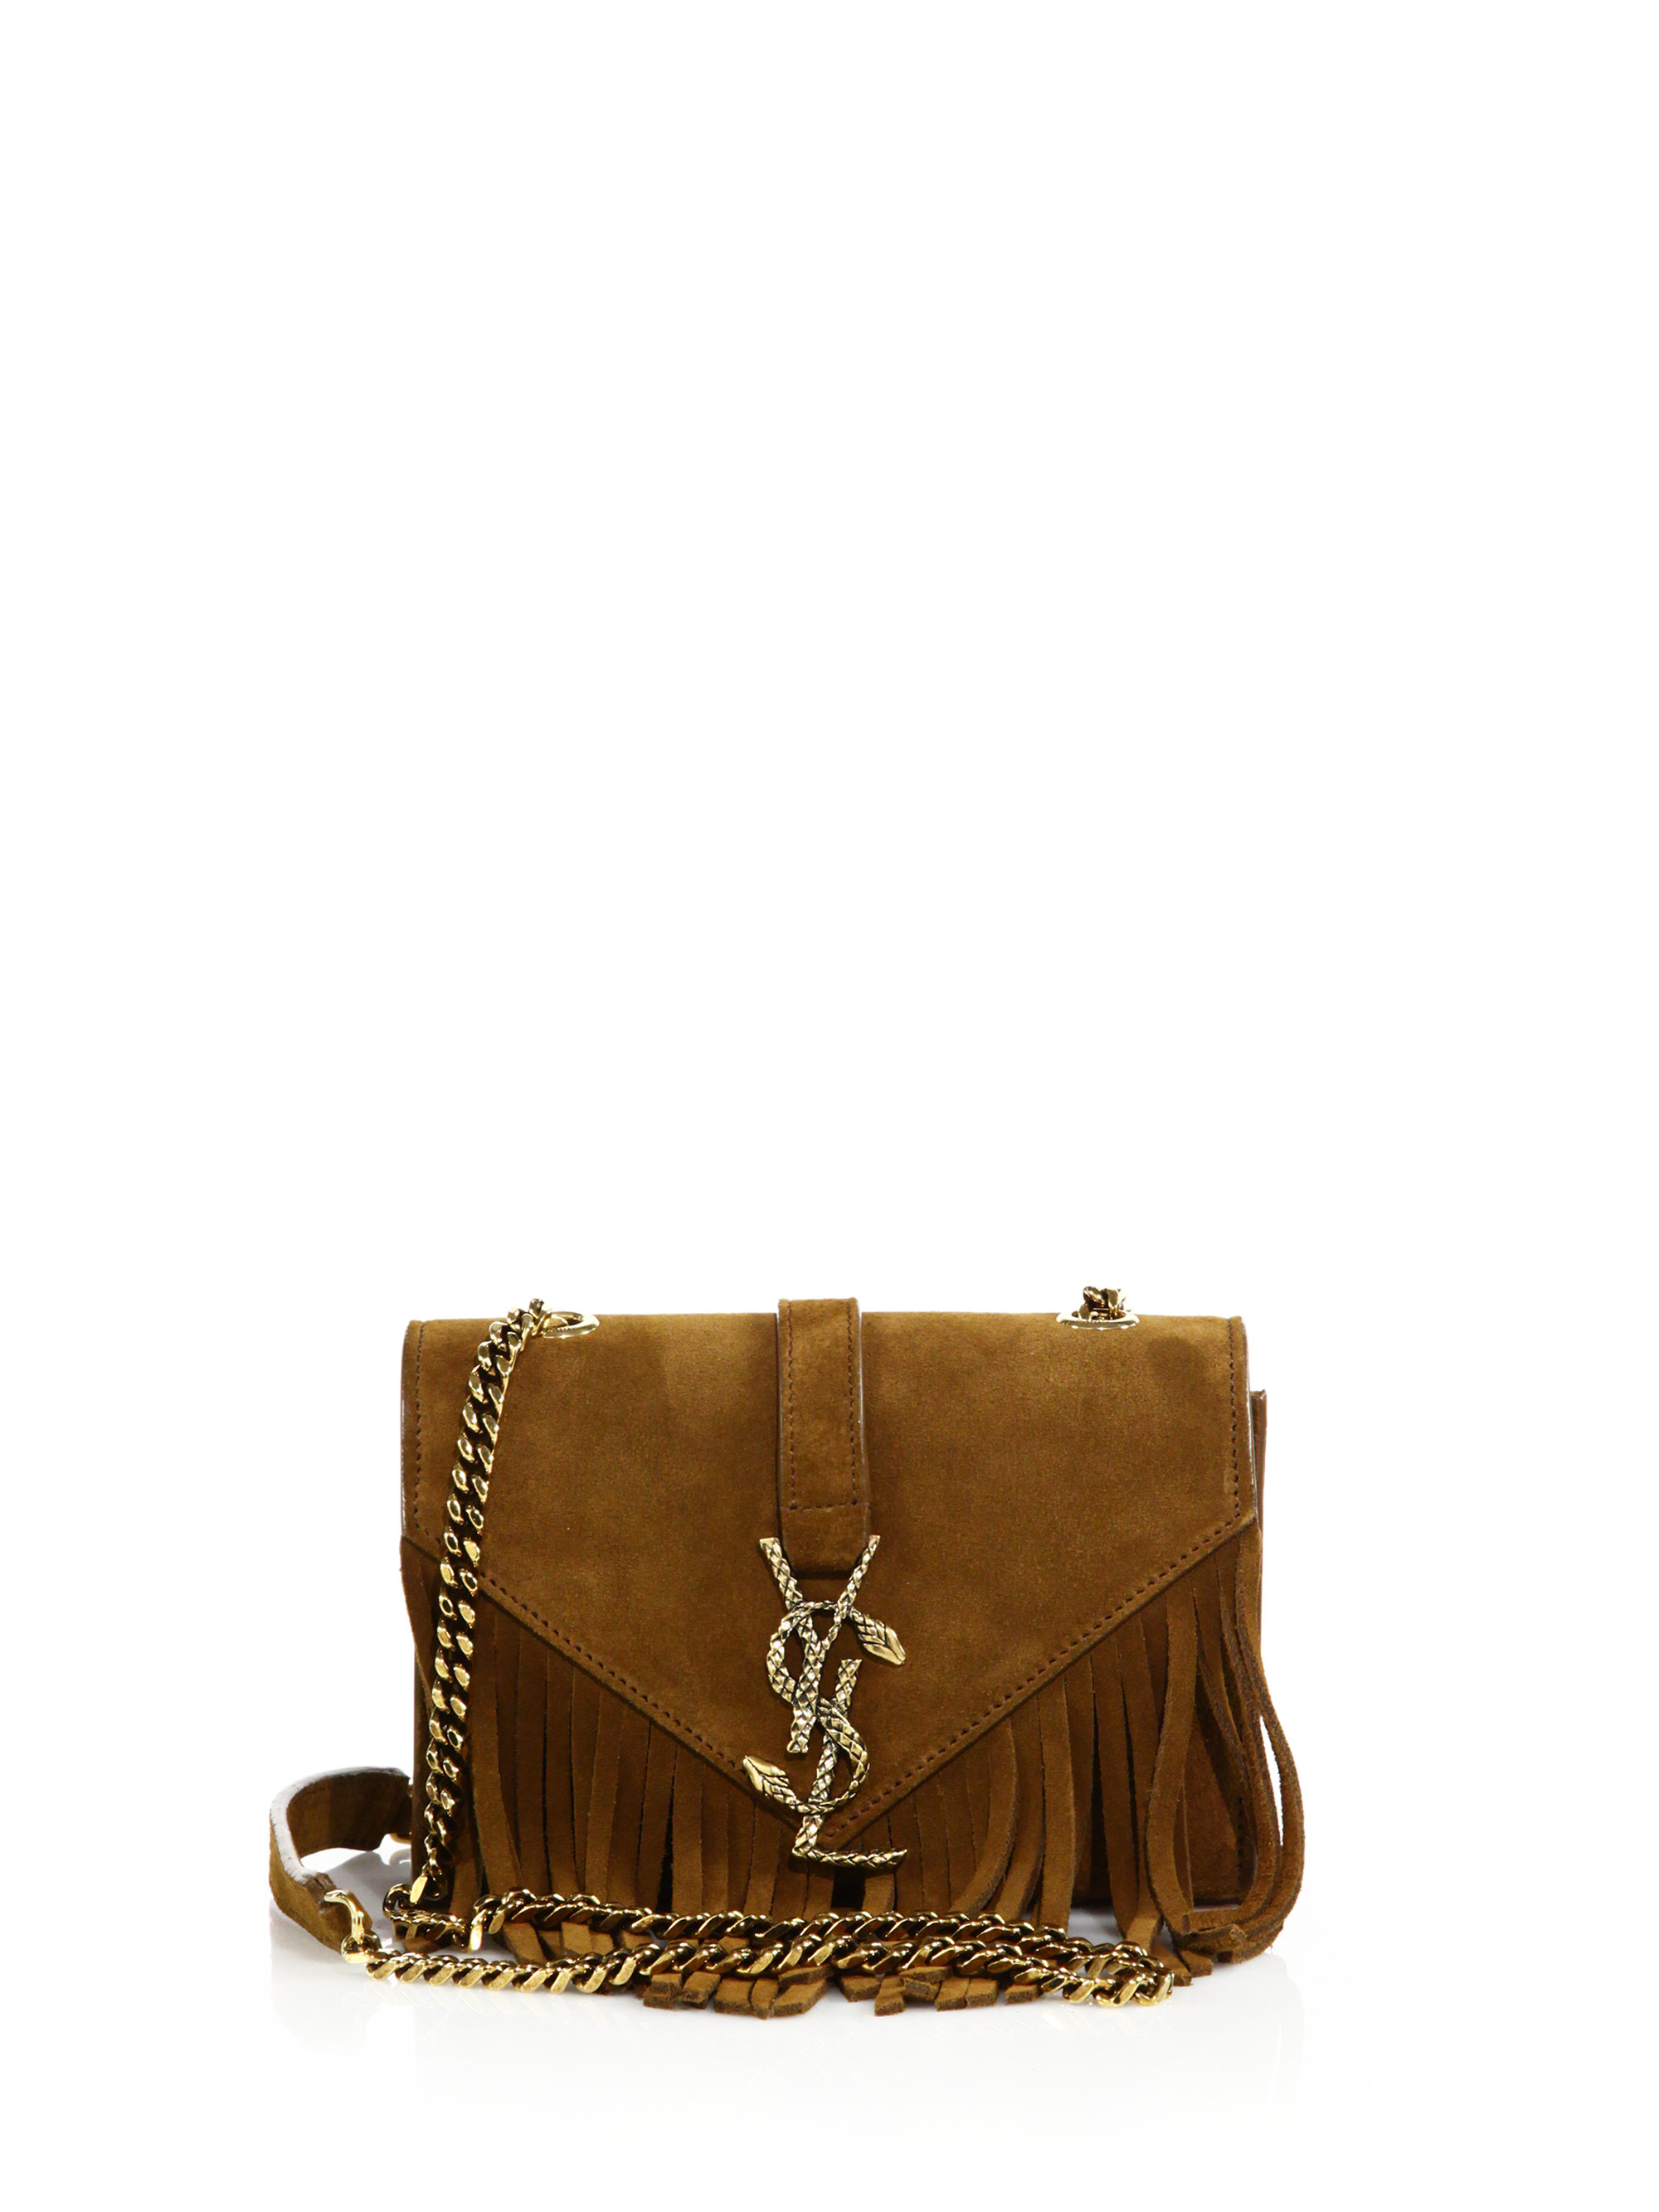 51e75356afa Saint Laurent Baby Serpent Fringed Suede Chain Crossbody Bag in ...